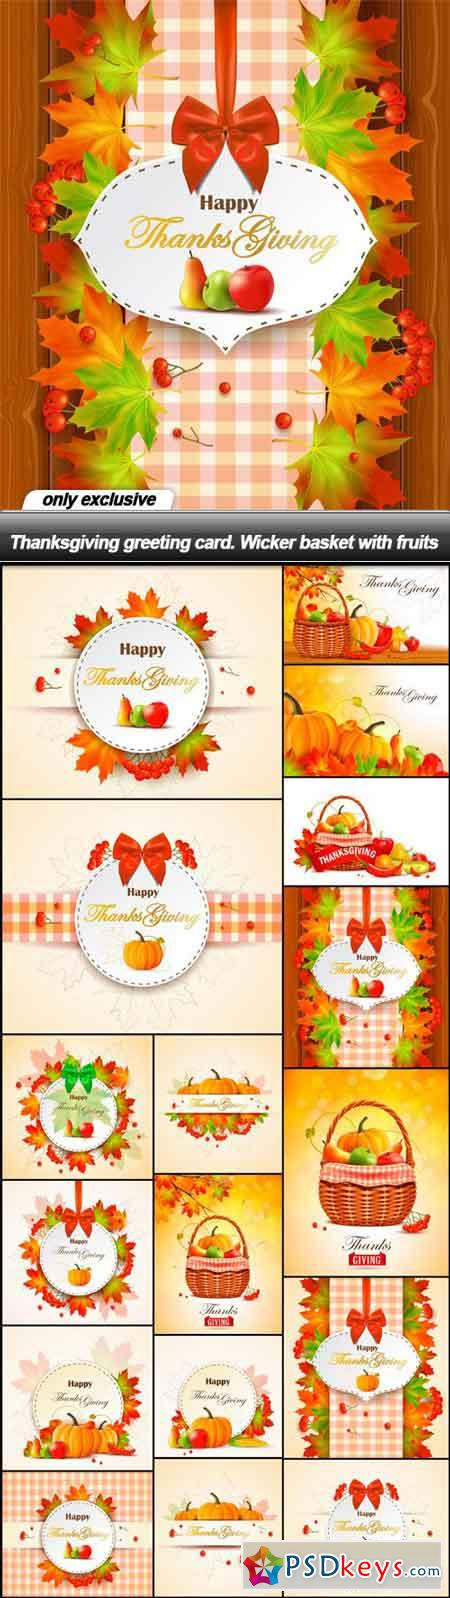 Thanksgiving greeting card. Wicker basket with fruits - 17 EPS